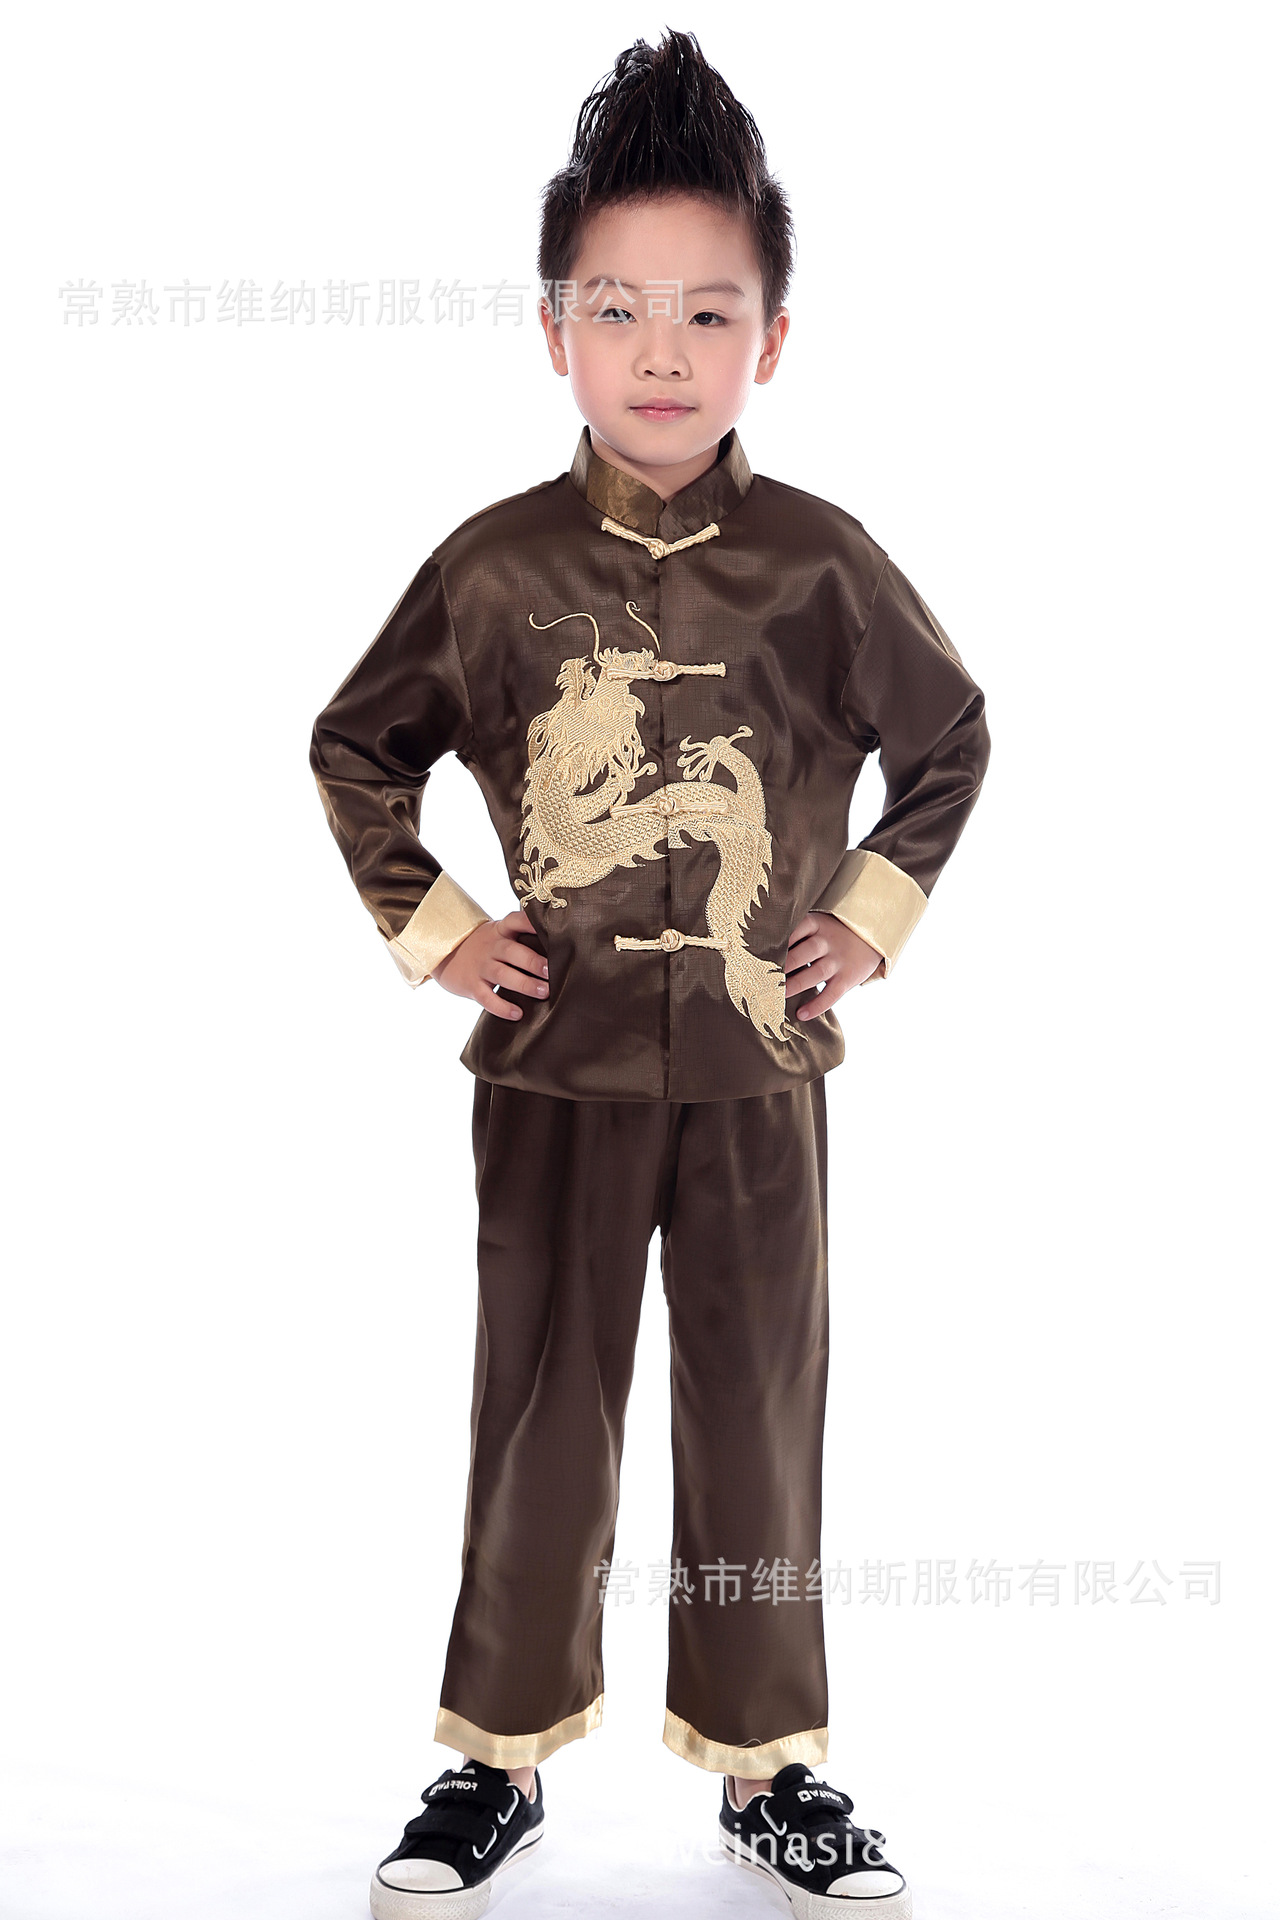 Children Chinese Costume Spring And Autumn 0780-3 Traditional Chinese Garments For Boys Tops New Year Service Chinese Style Form